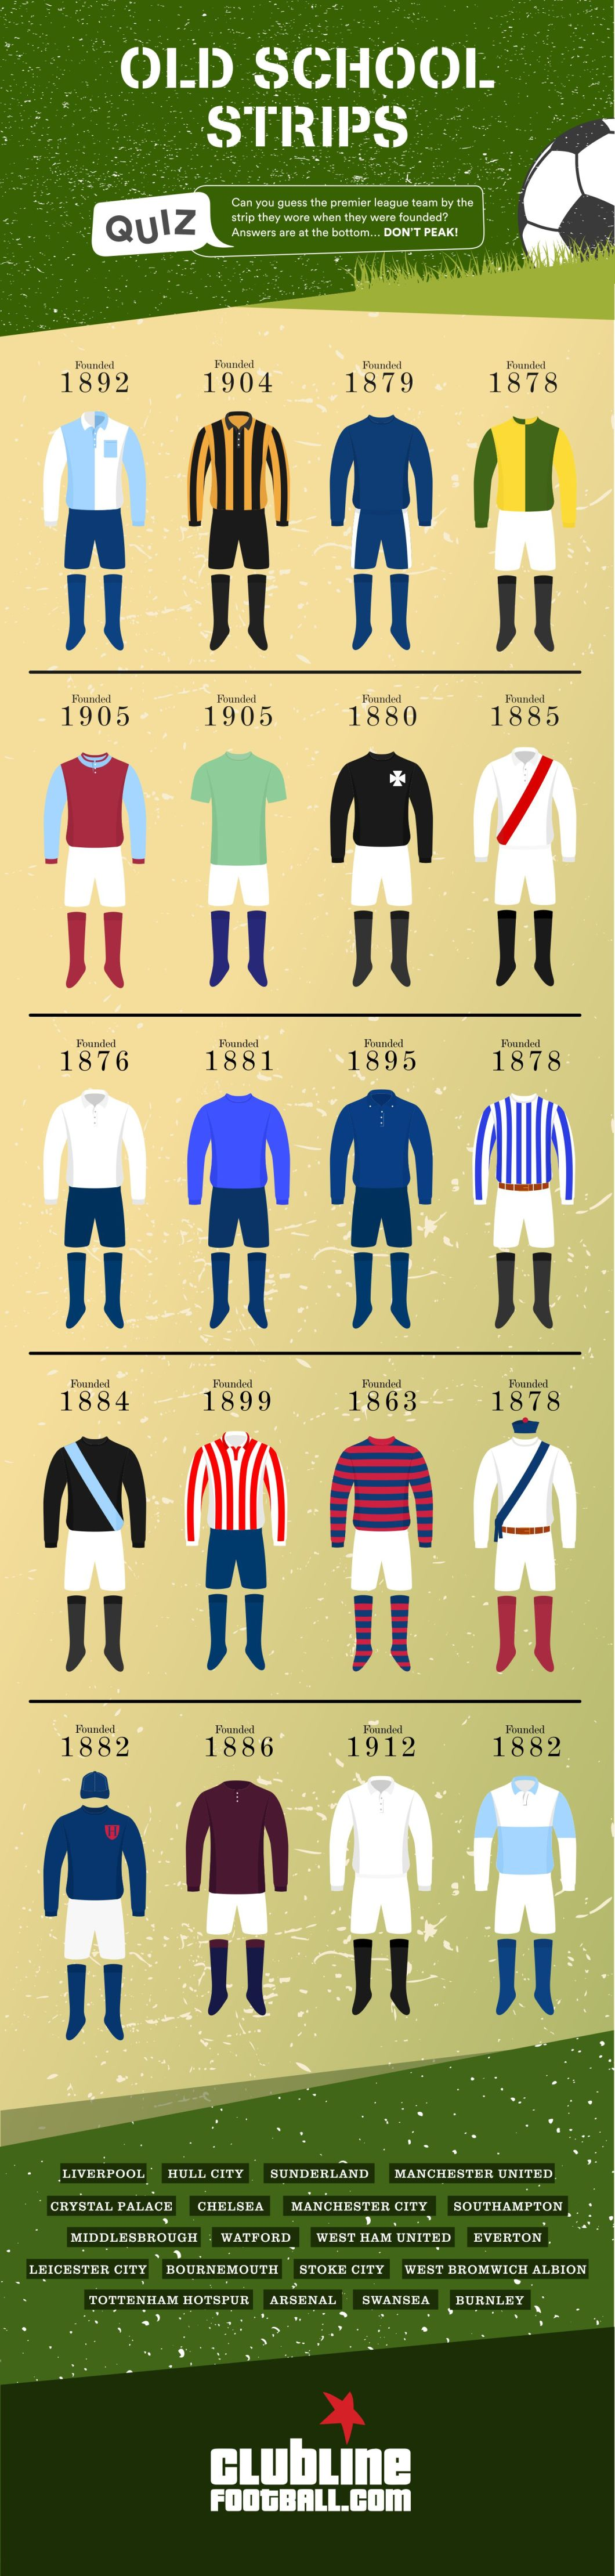 Premiere League Strips Game (Only For Die-Hard Fans Of Soccer) - Infographic